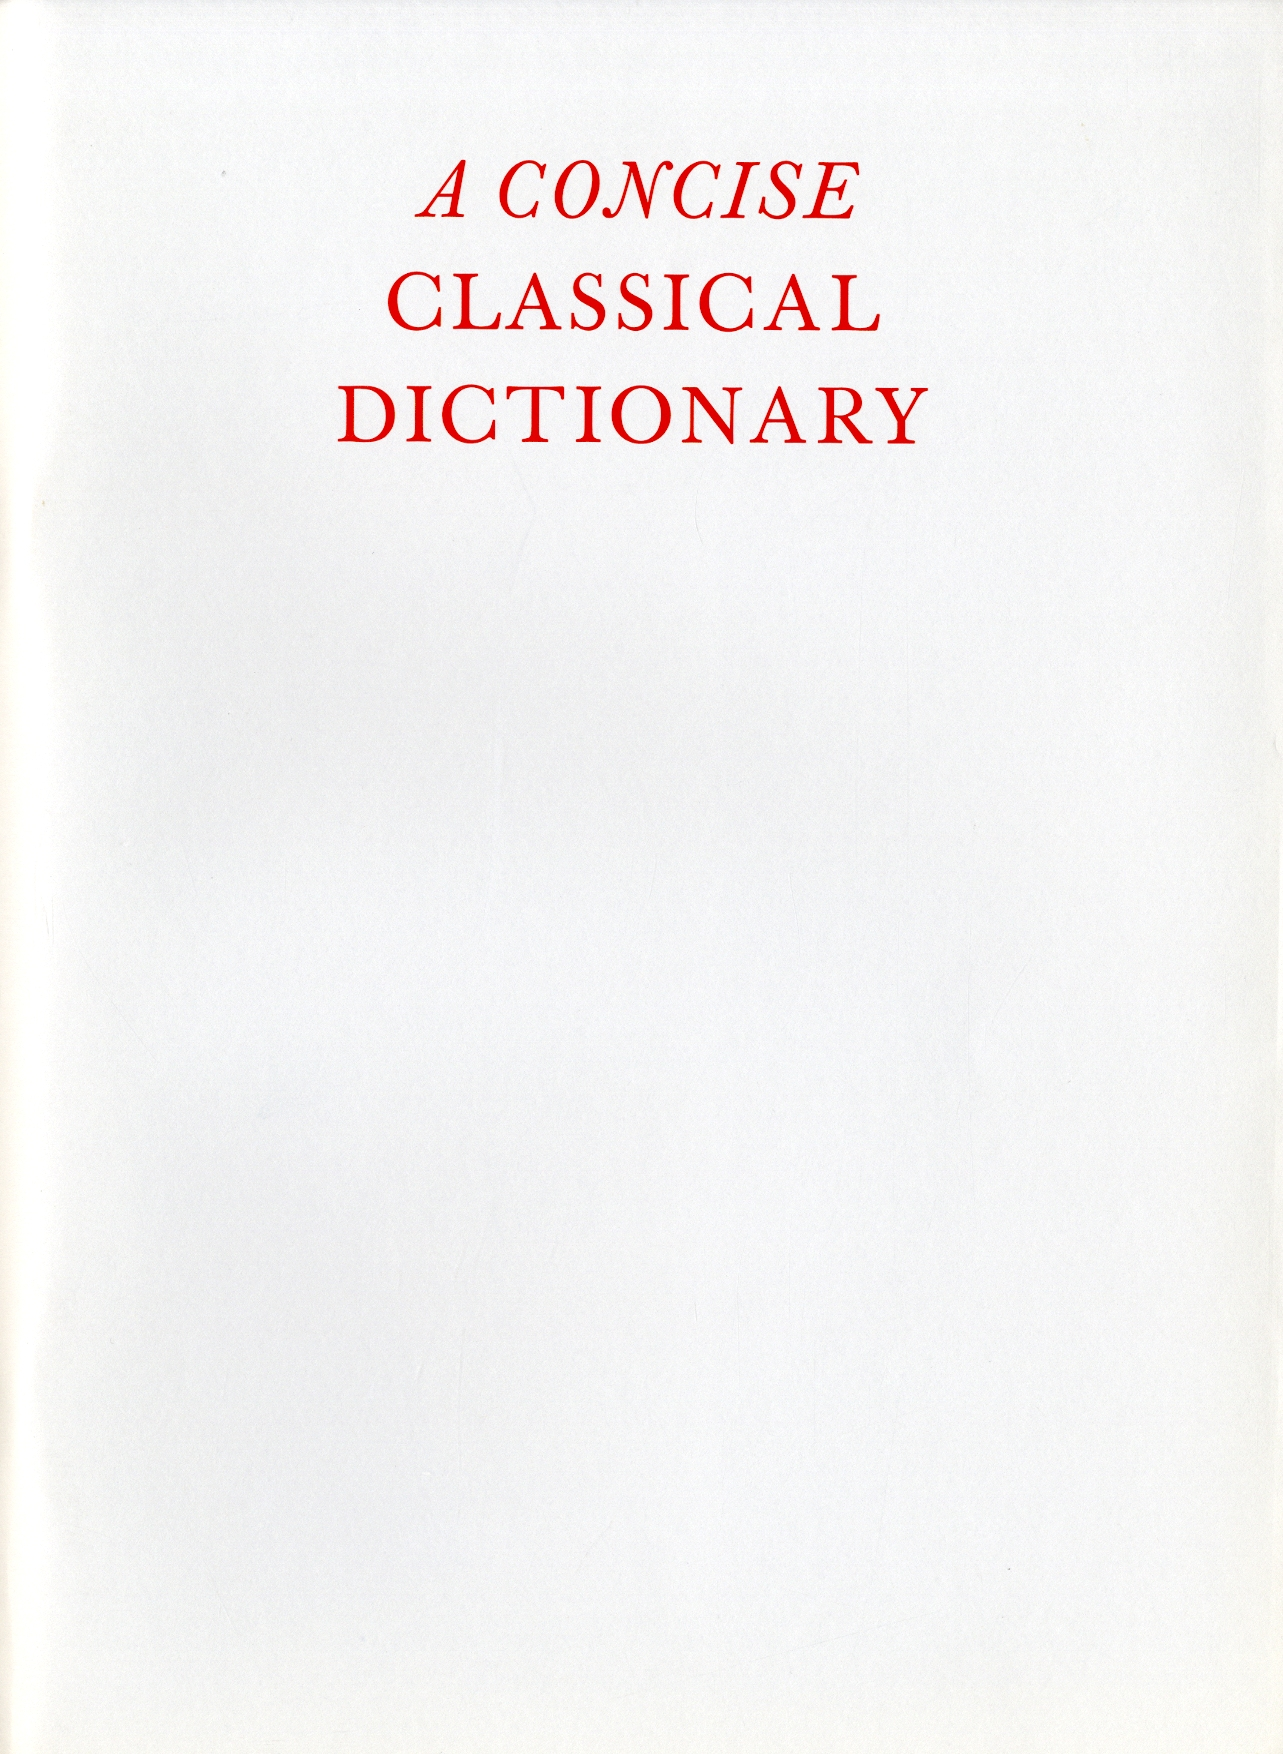 A Concise Classical Dictionary